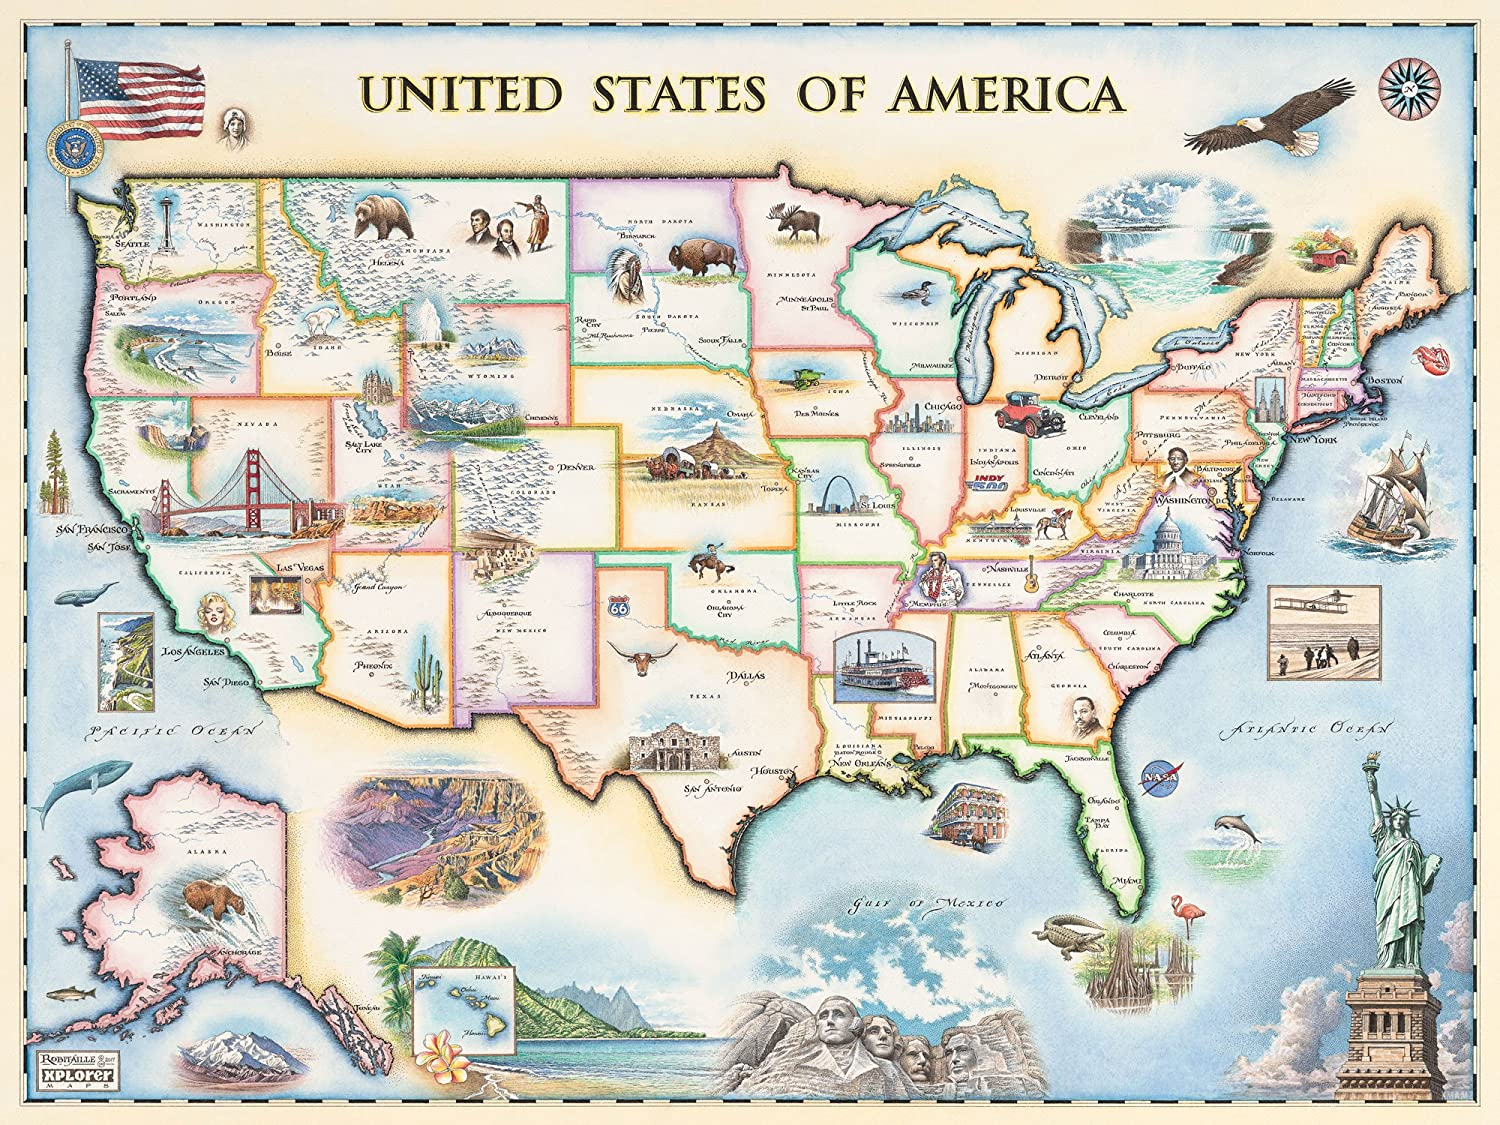 USA Map Wall Art Poster - Authentic Ranking TOP3 Hand Maps Old in World Max 88% OFF Drawn